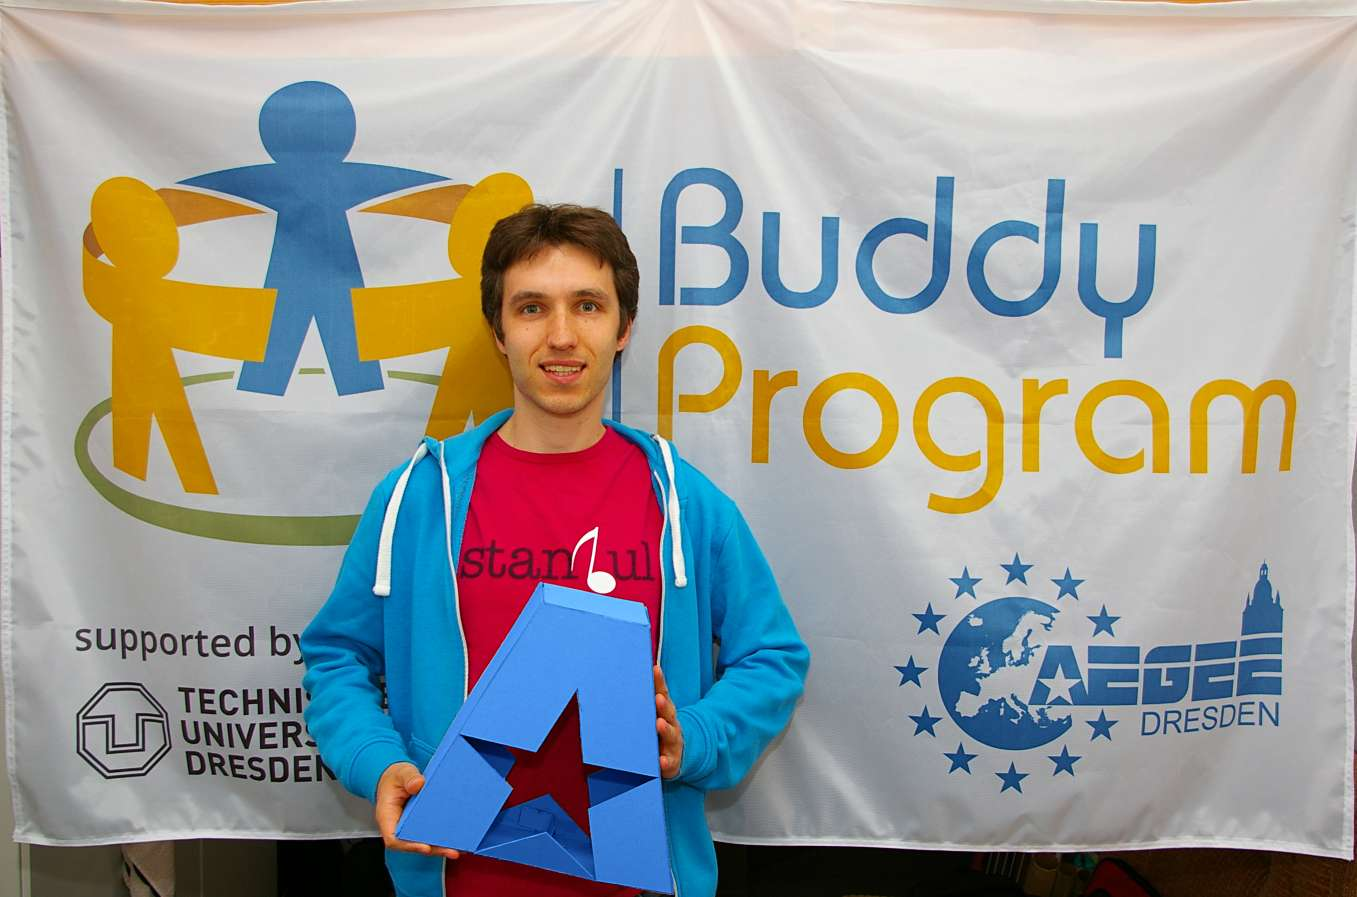 Still New, But Already Successful: Contact Antenna AEGEE-Dresden and Their Buddy Program